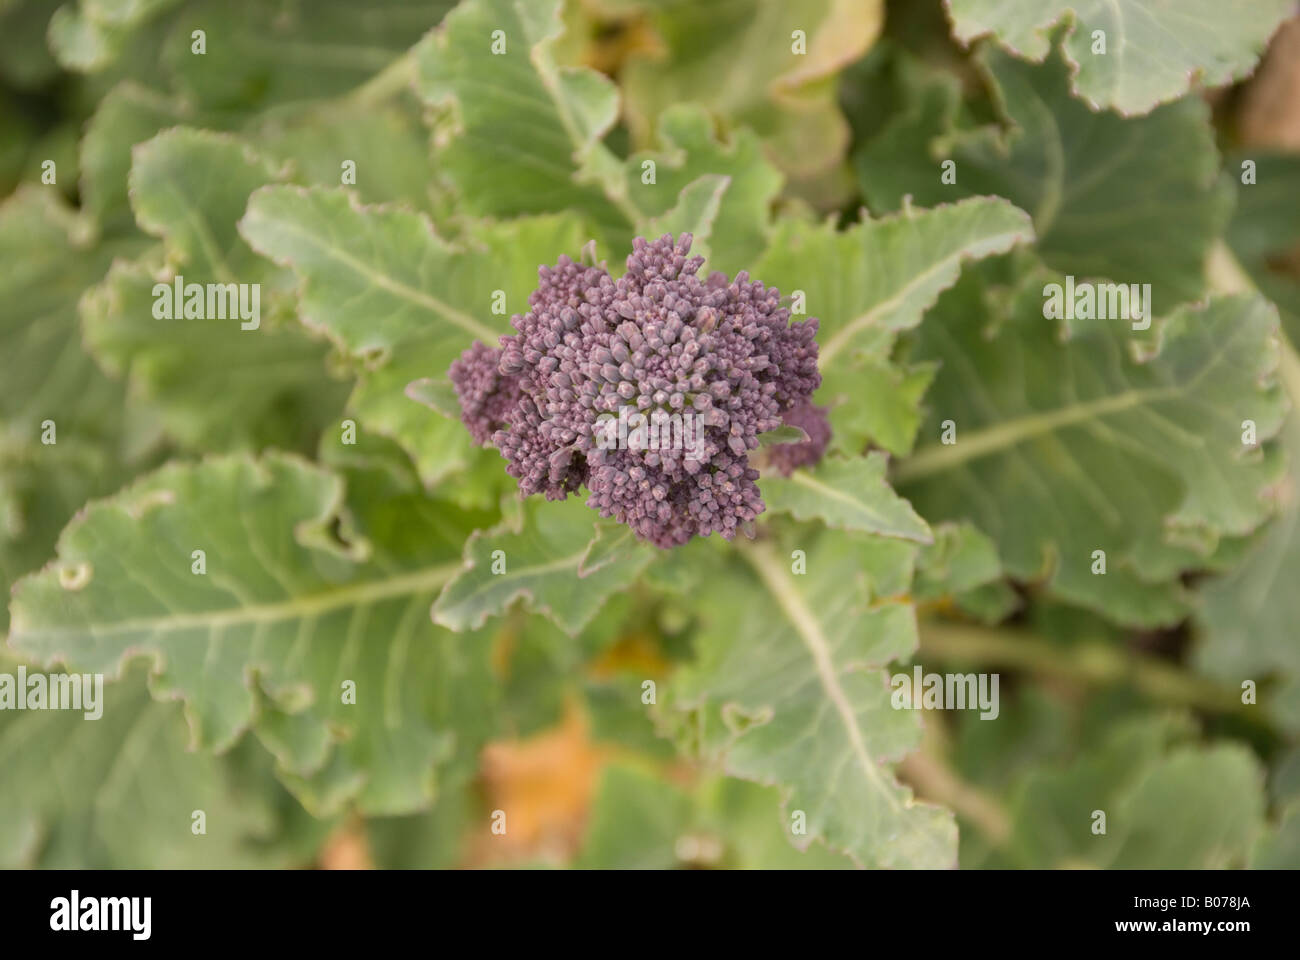 how to grow purple sprouting broccoli